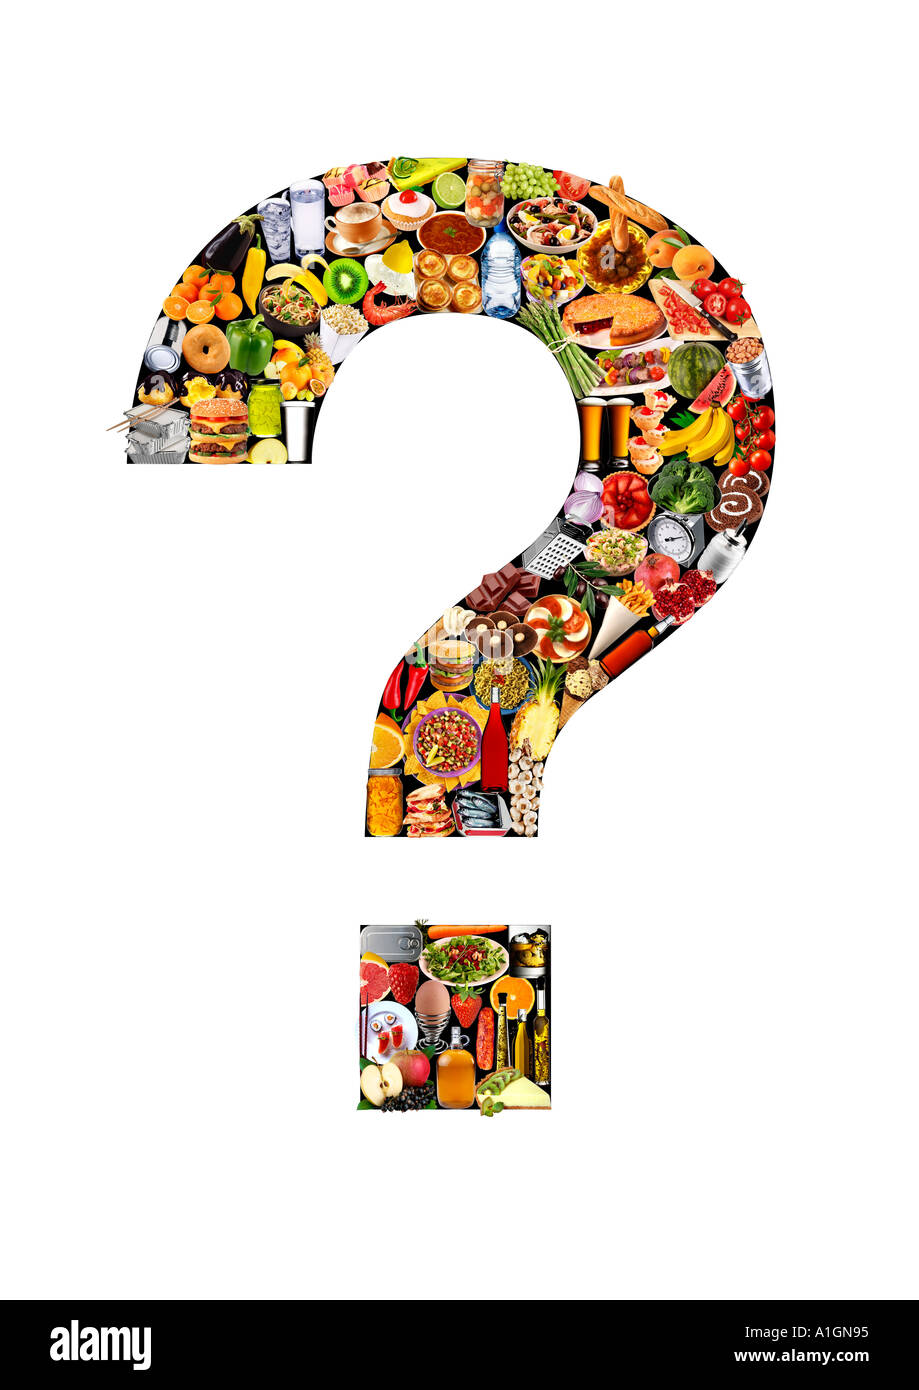 FOODFONT QUESTION MARK ON WHITE - Stock Image